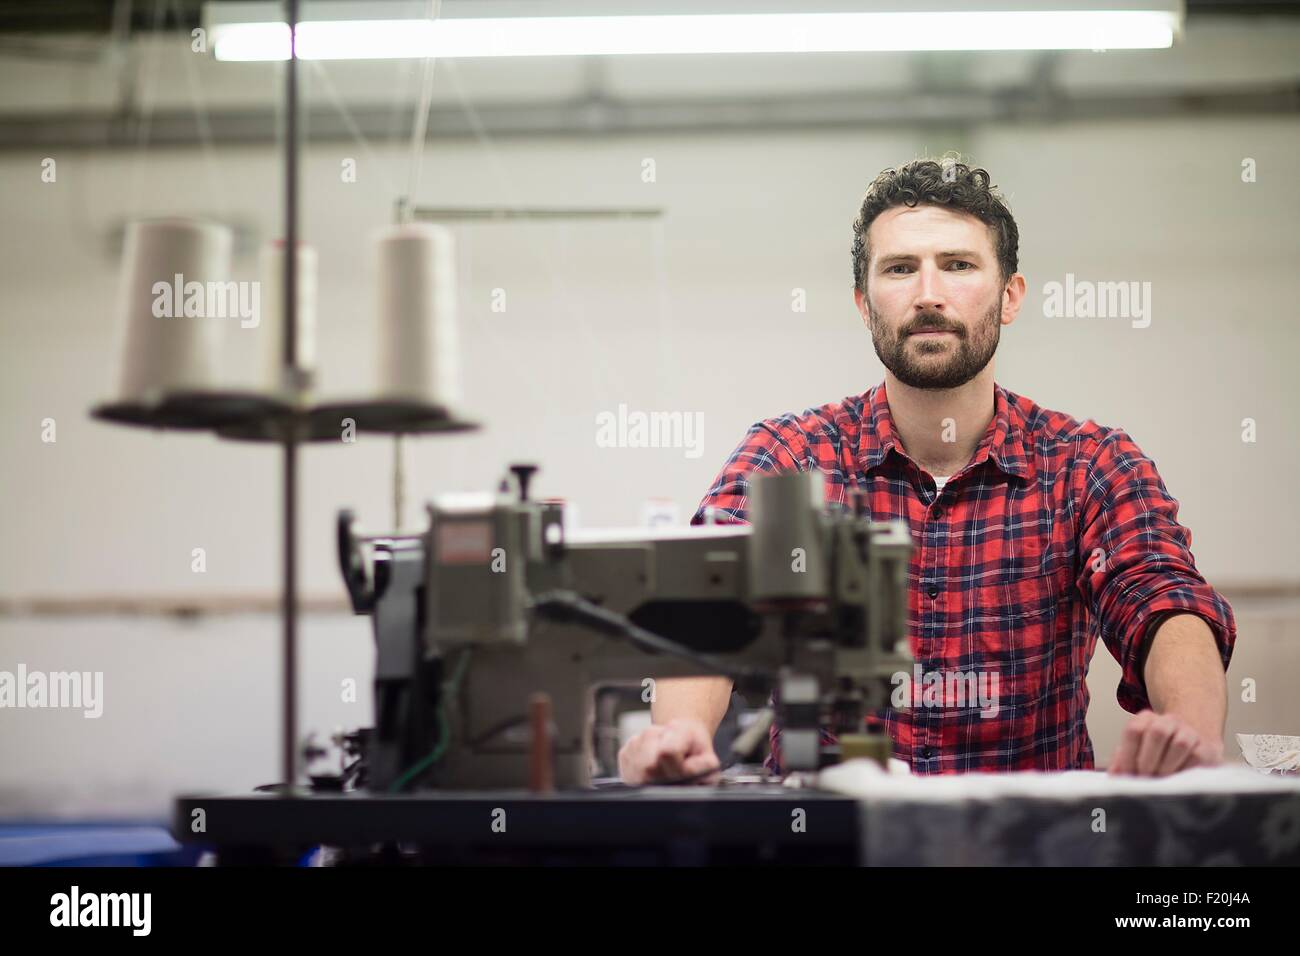 Portrait of male textile designer using sewing machine in old textile mill - Stock Image